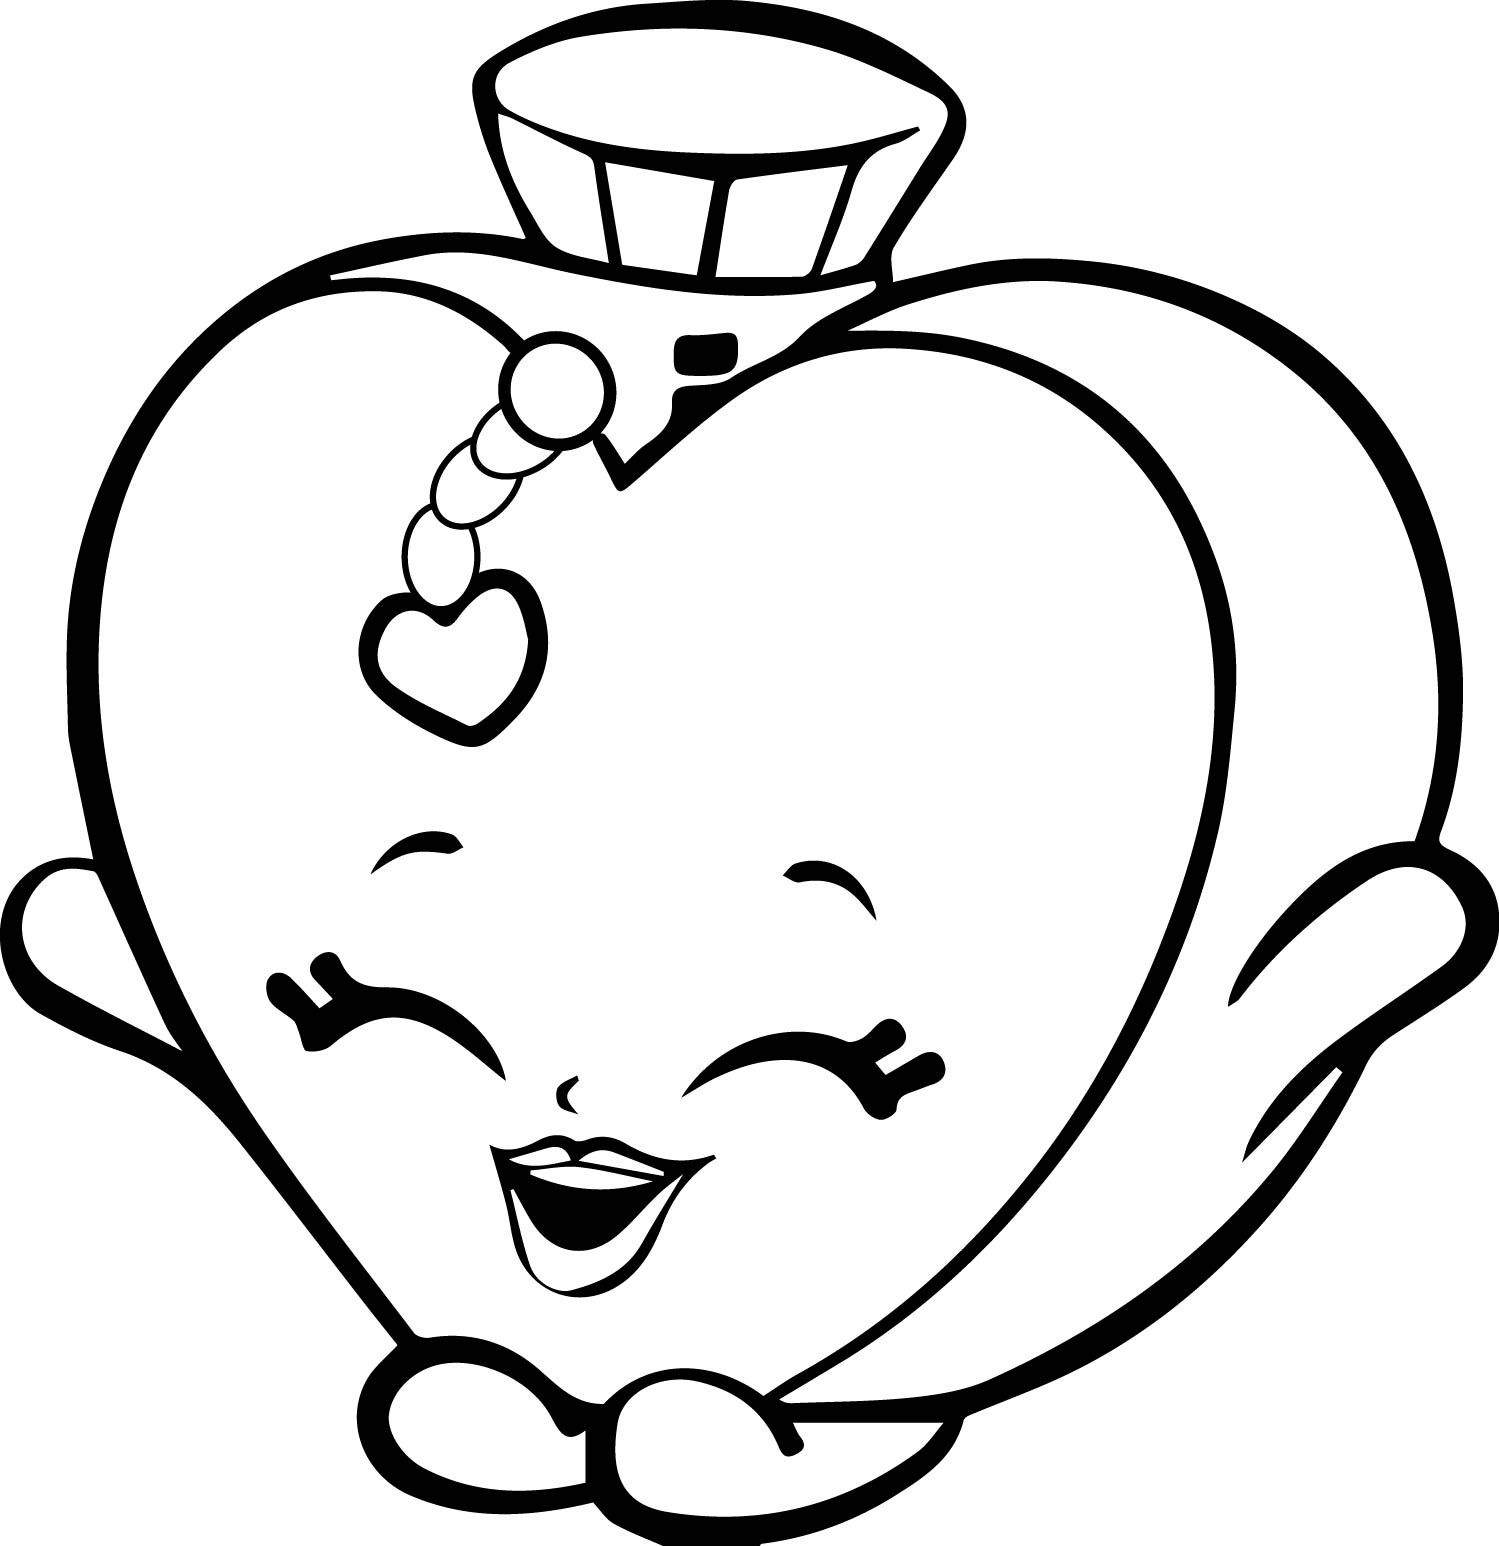 Click to see printable version of Heart Shopkin Coloring page